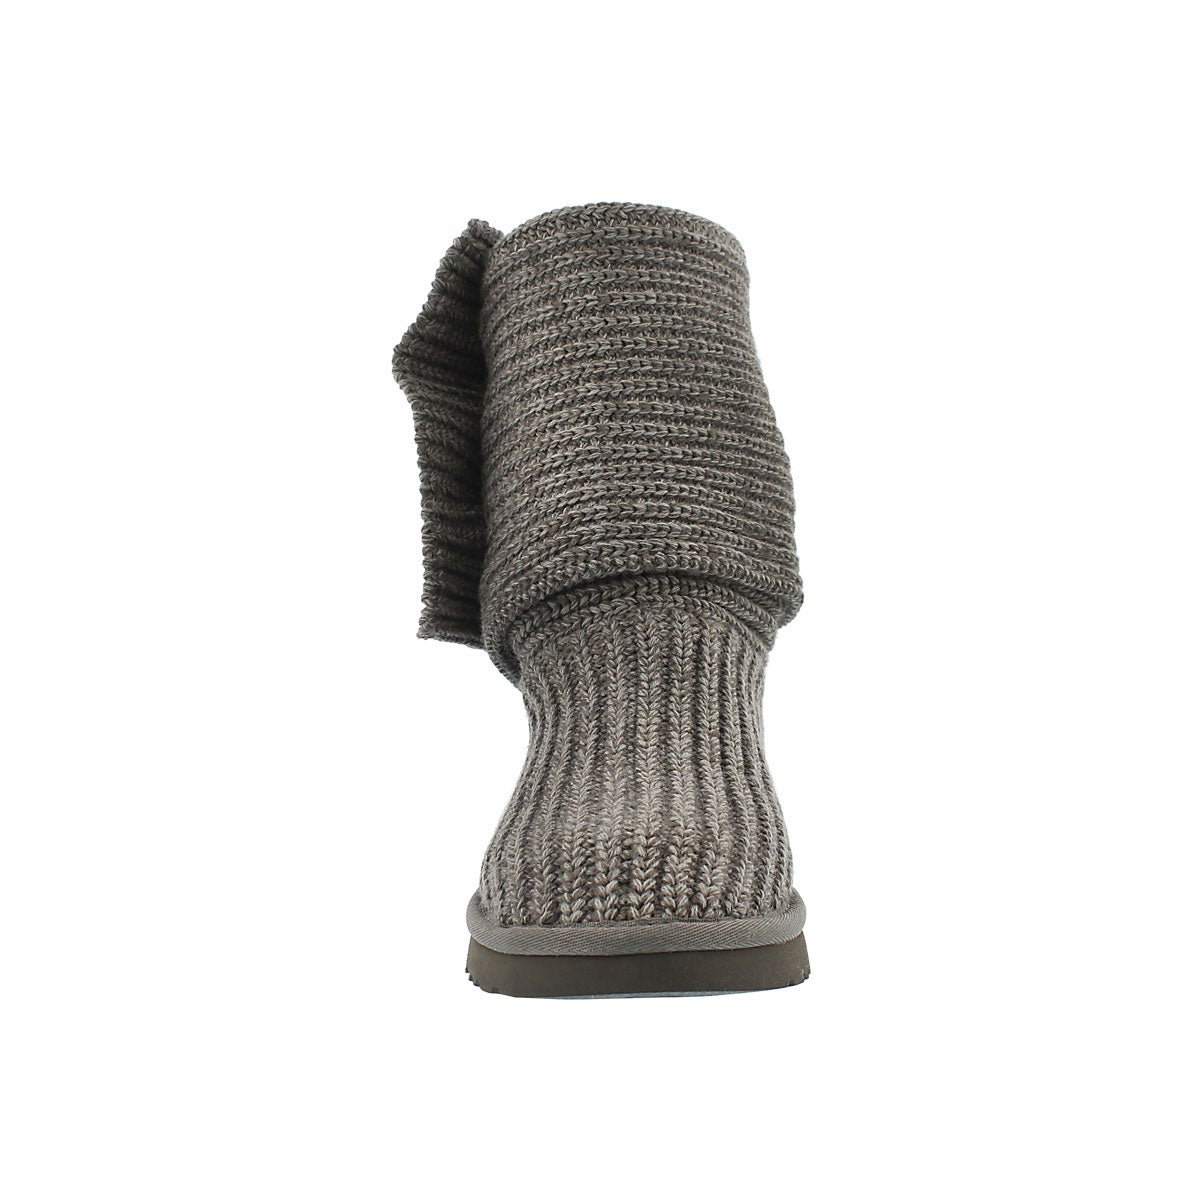 Lds Classic Cardy grey knit button boot